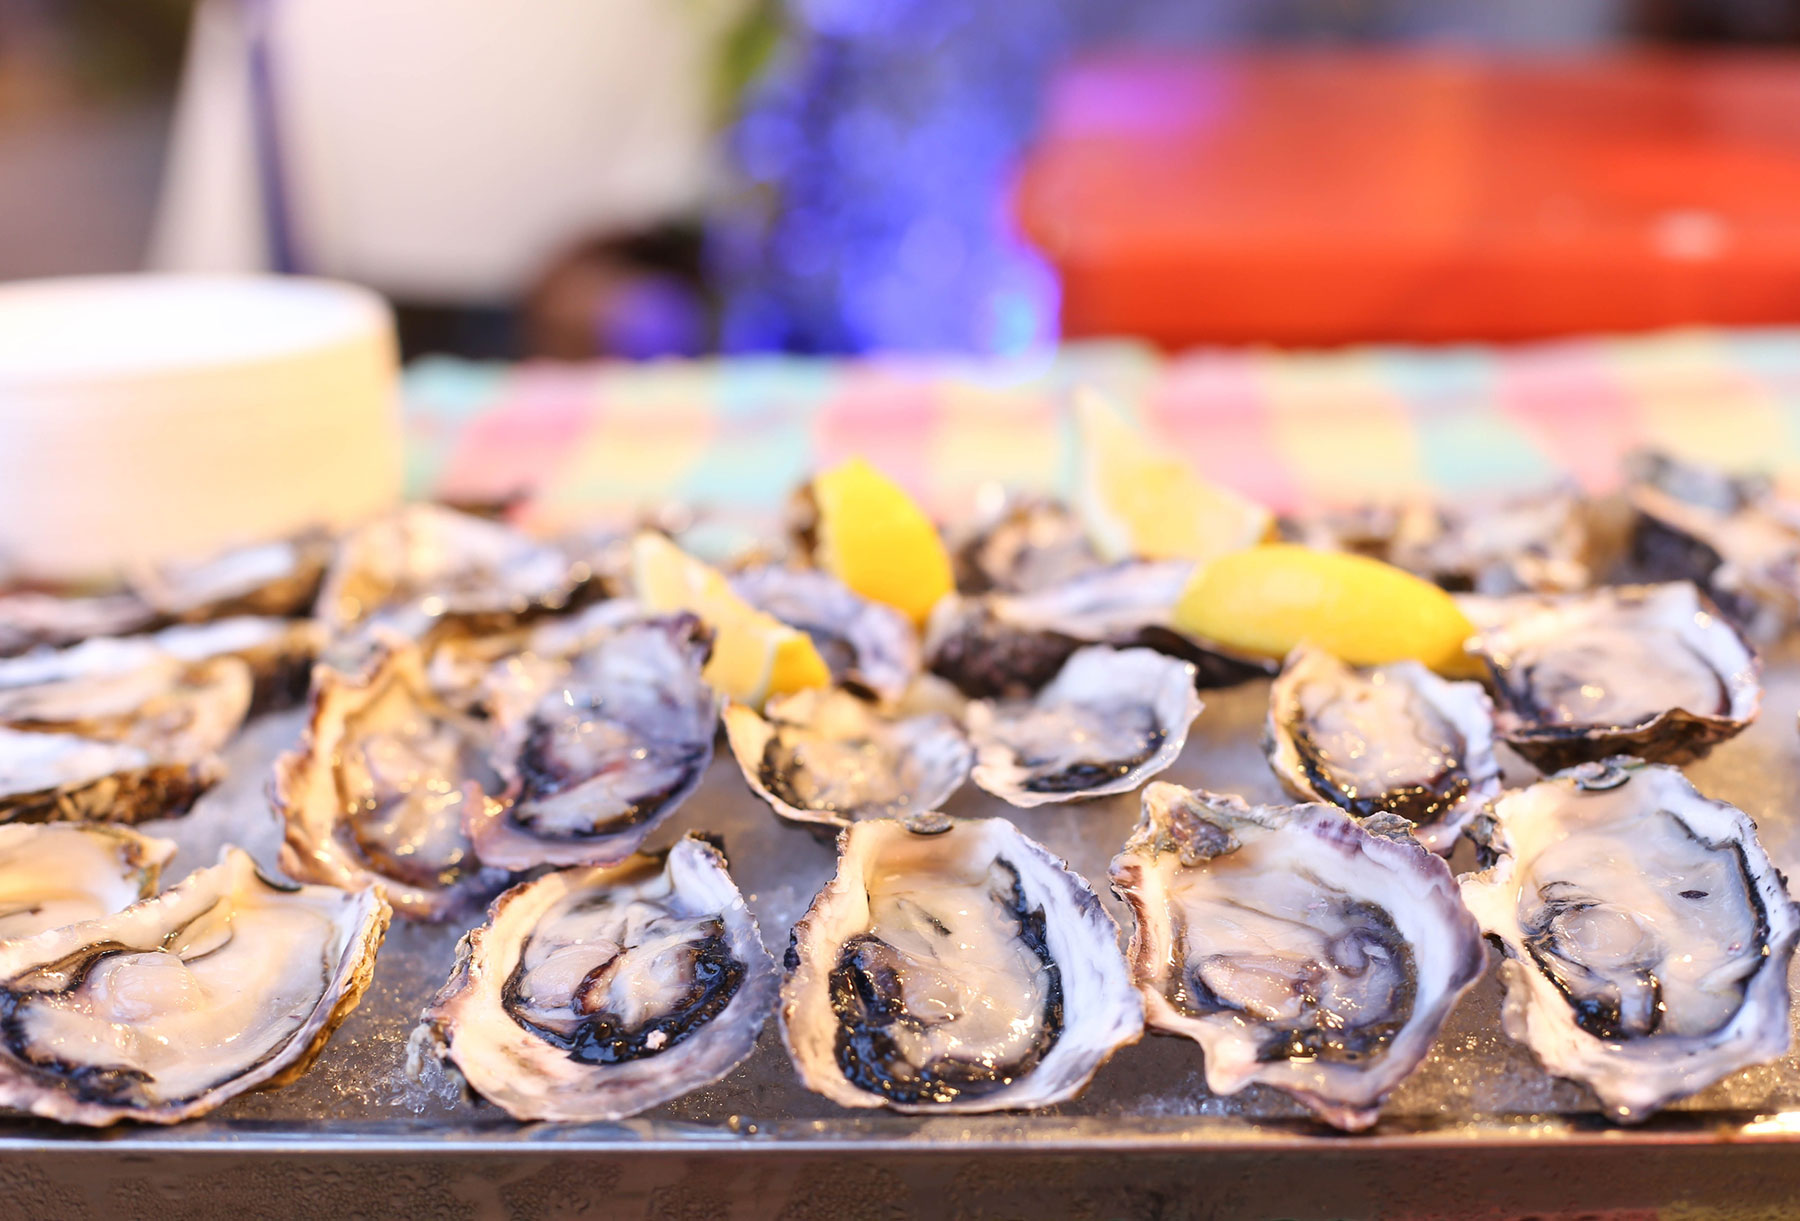 oysters-with-lemons.jpg